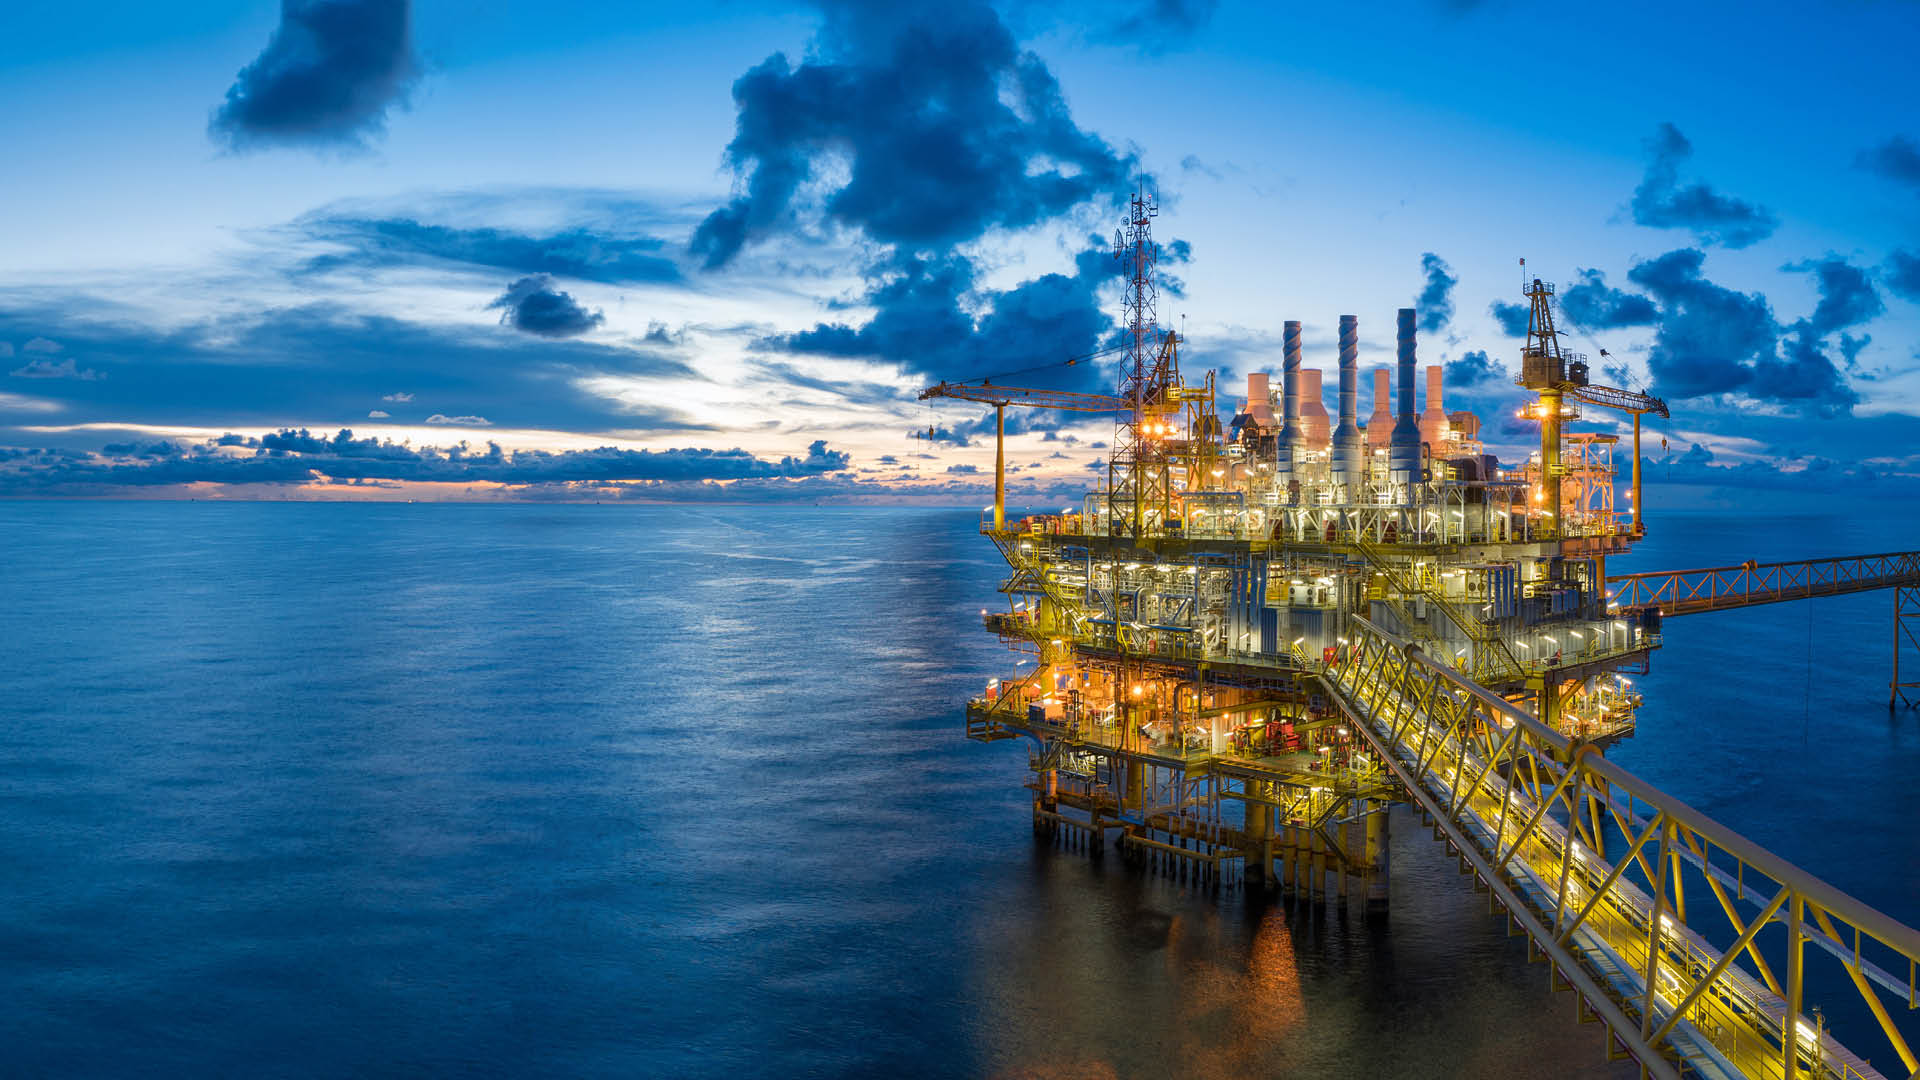 Panorama of Oil and Gas central processing platform in twilight